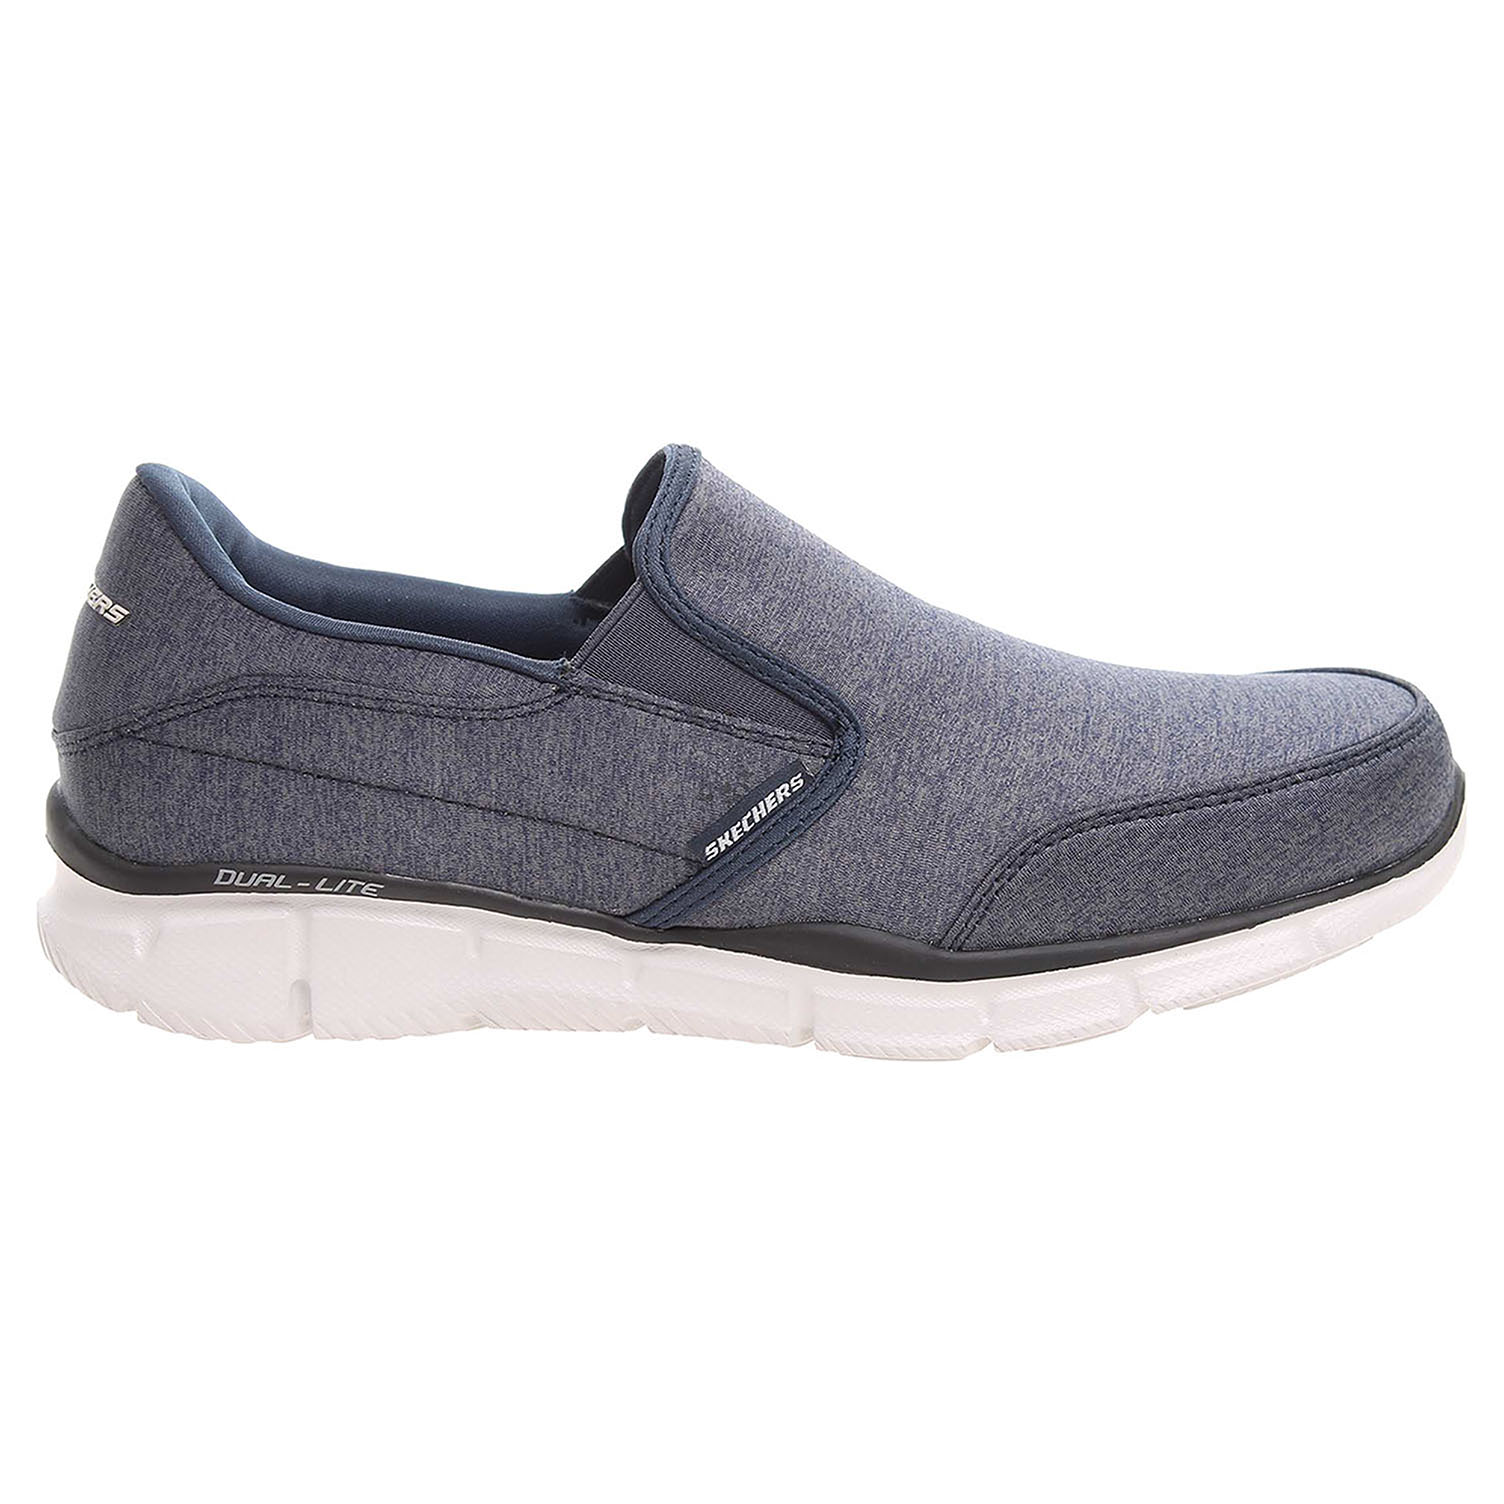 Skechers Forward Thinking navy-gray